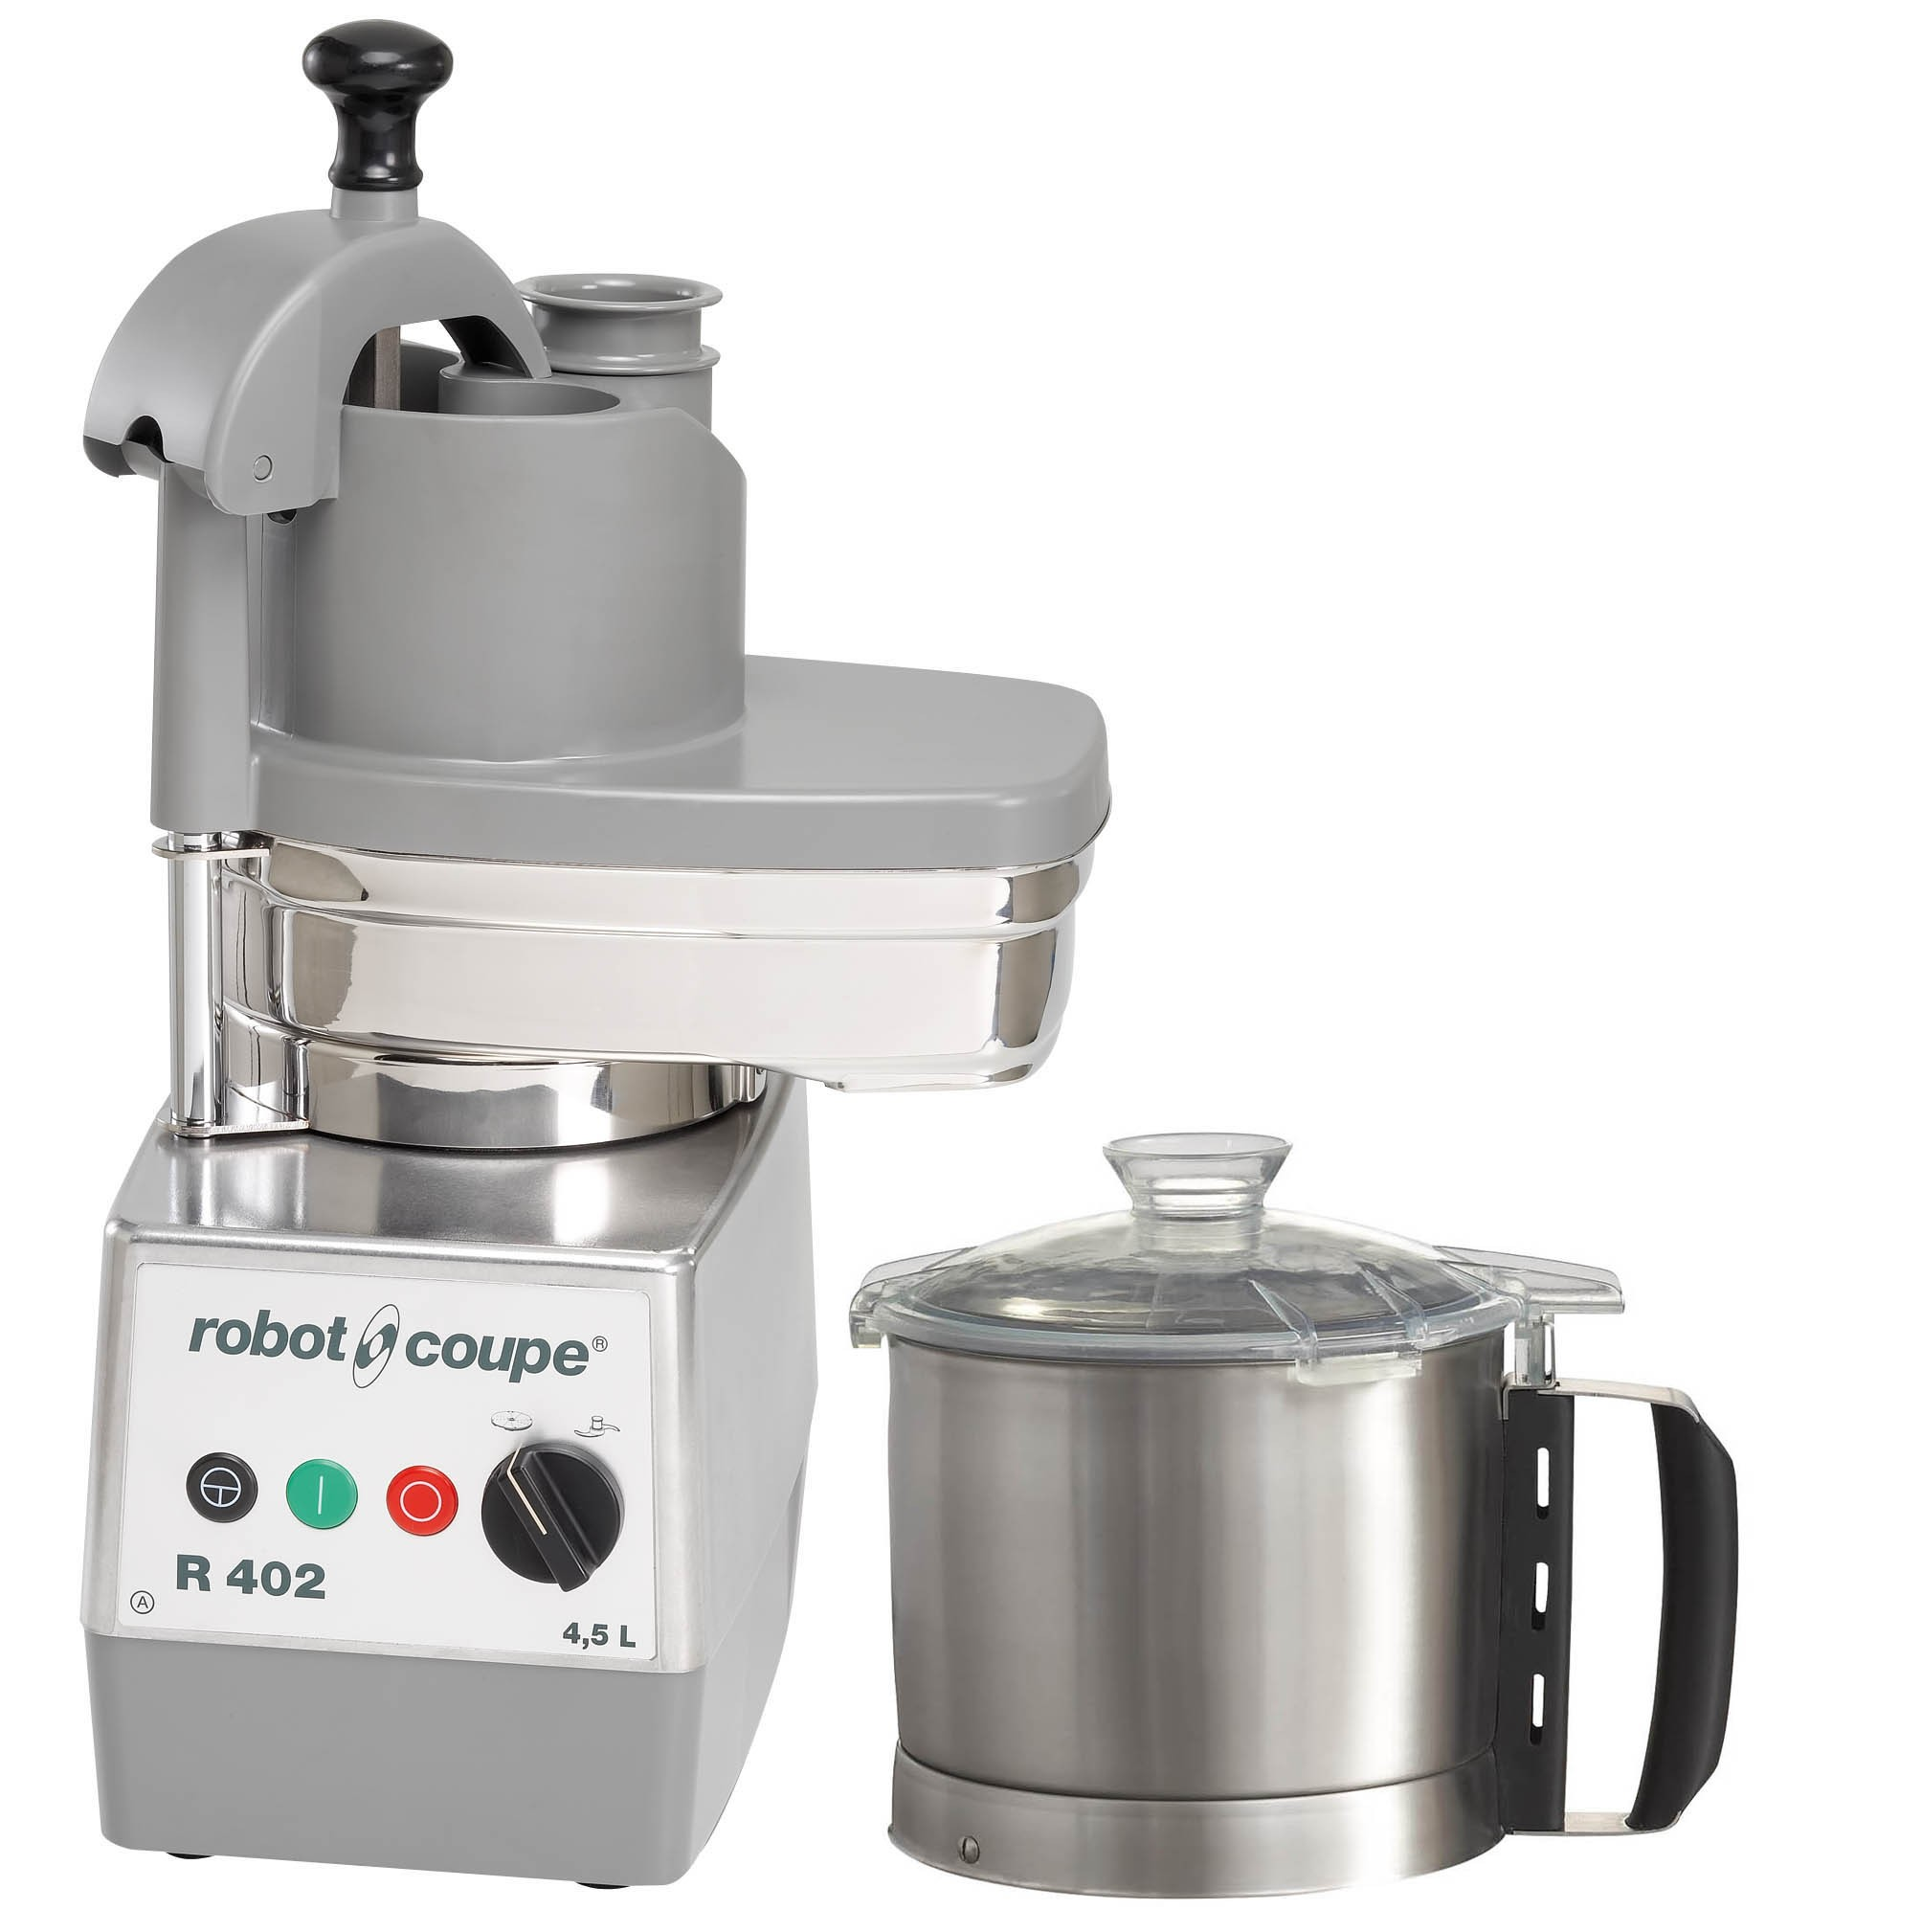 Image of Robot Coupe R402 Combination Food Processor S/S Bowl